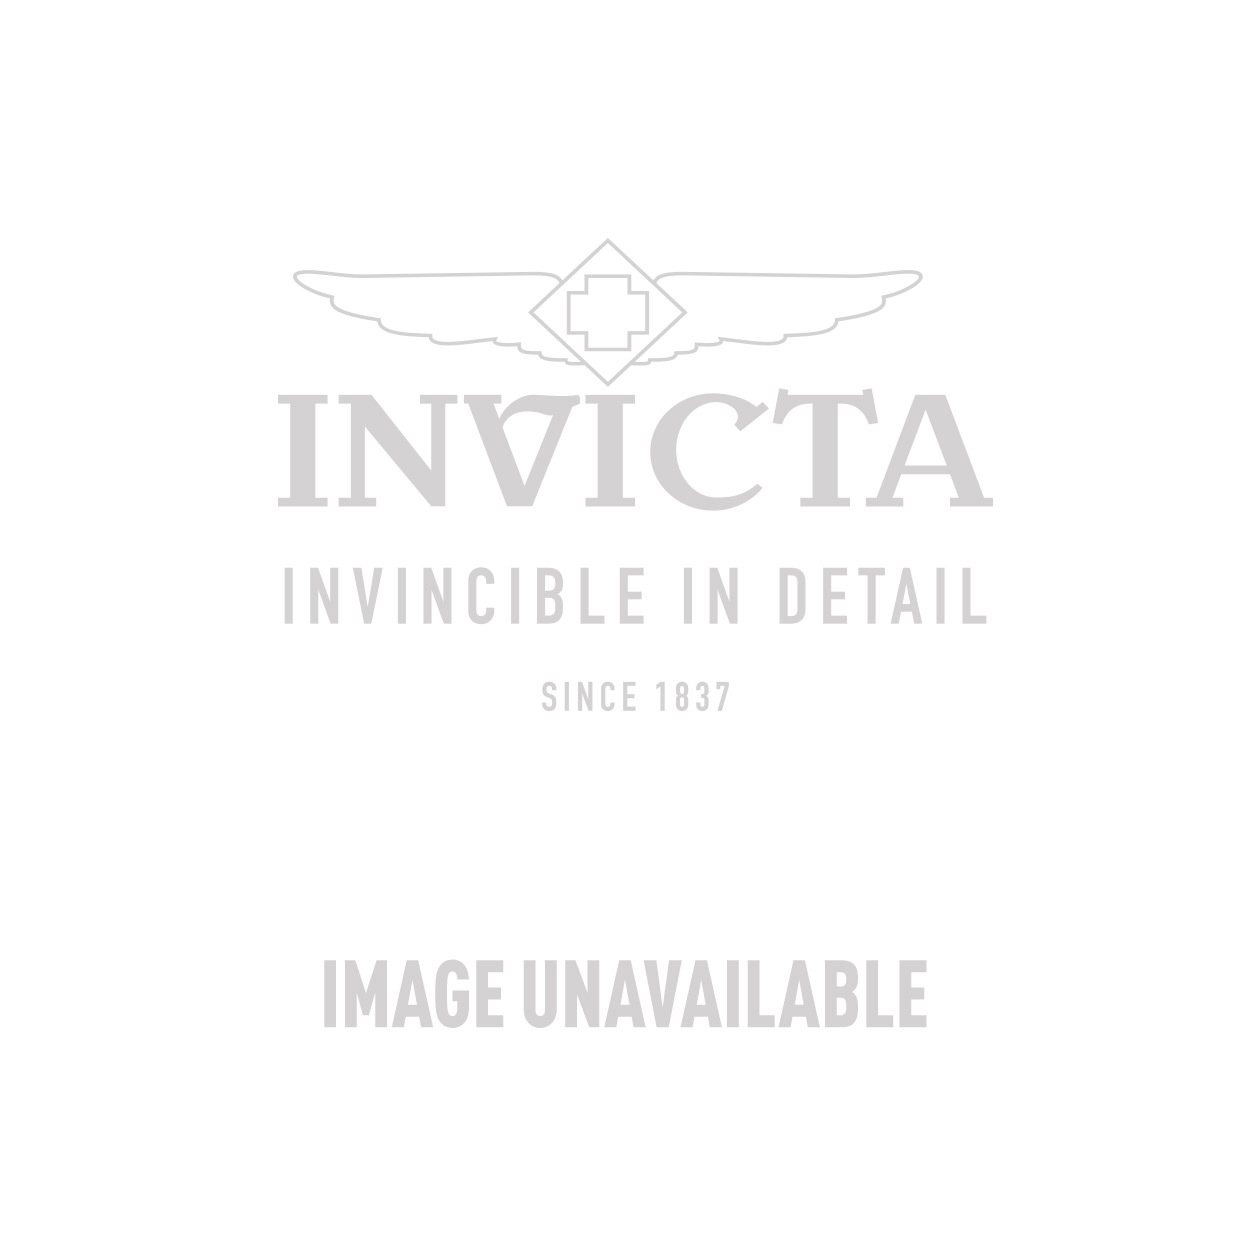 Invicta Specialty Swiss Movement Quartz Watch - Rose Gold case with Brown tone Leather band - Model 15125